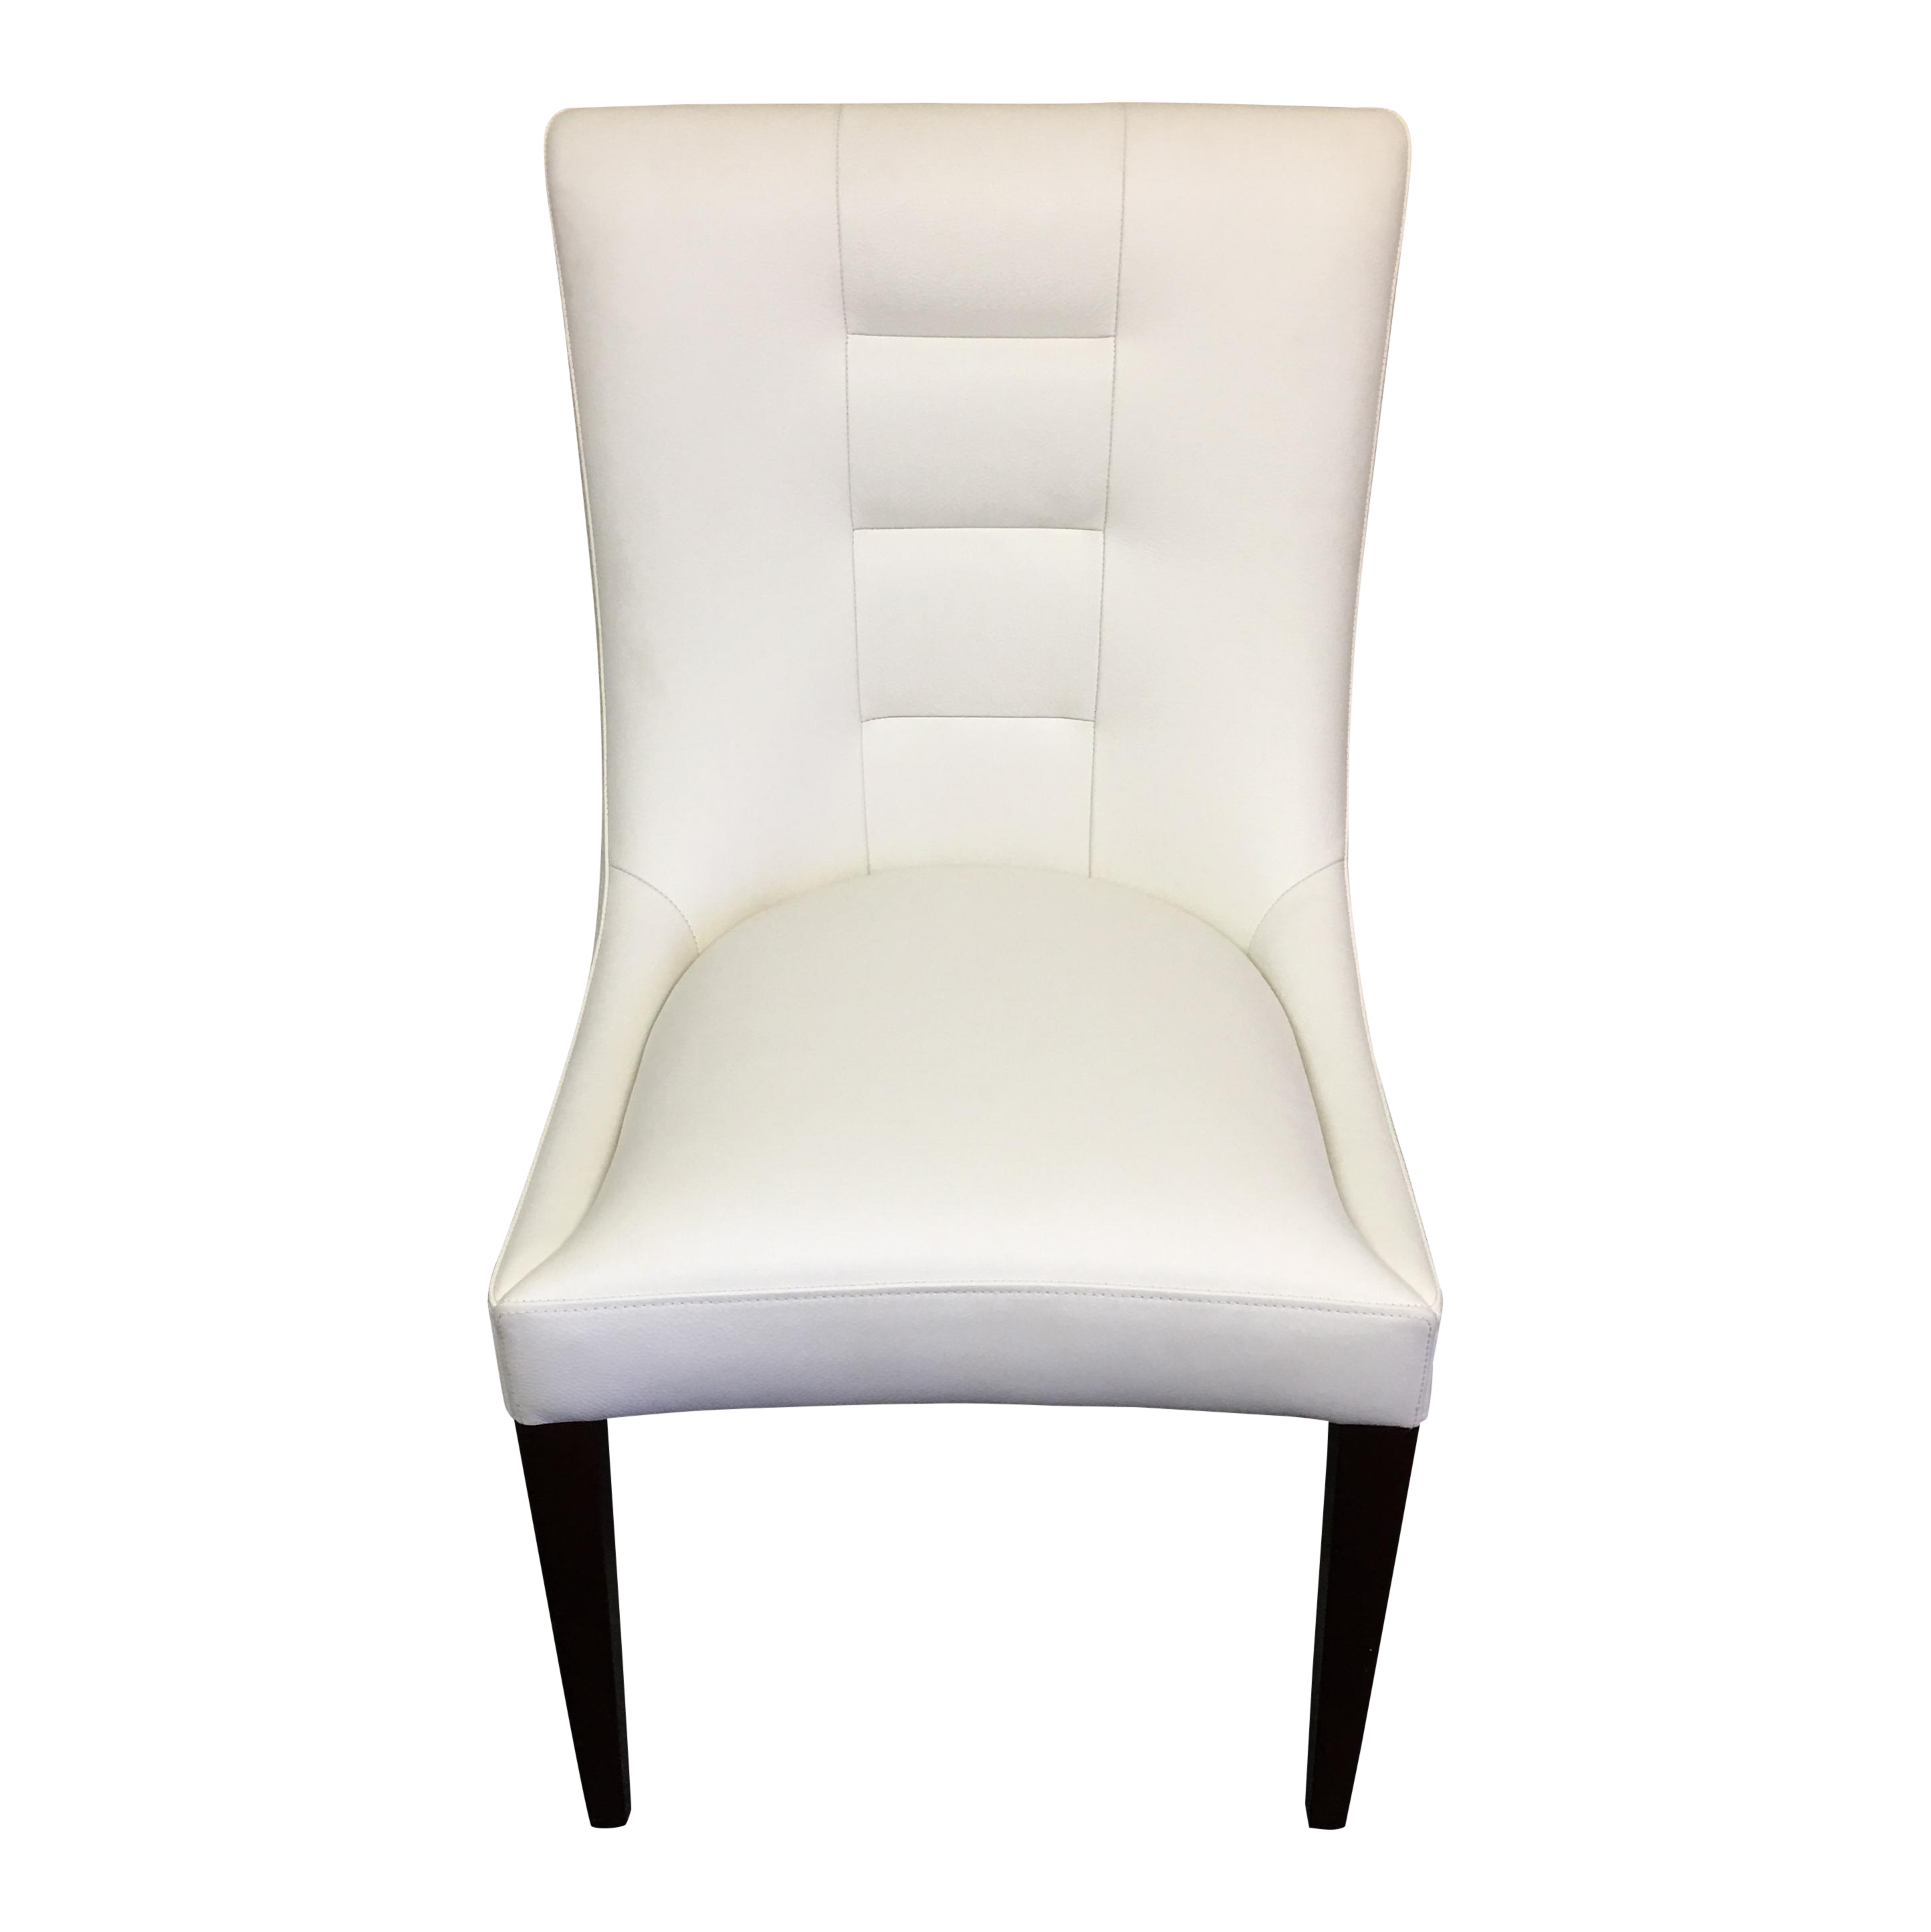 Dakota Jackson White Leather Marina Odile Chair Chairish